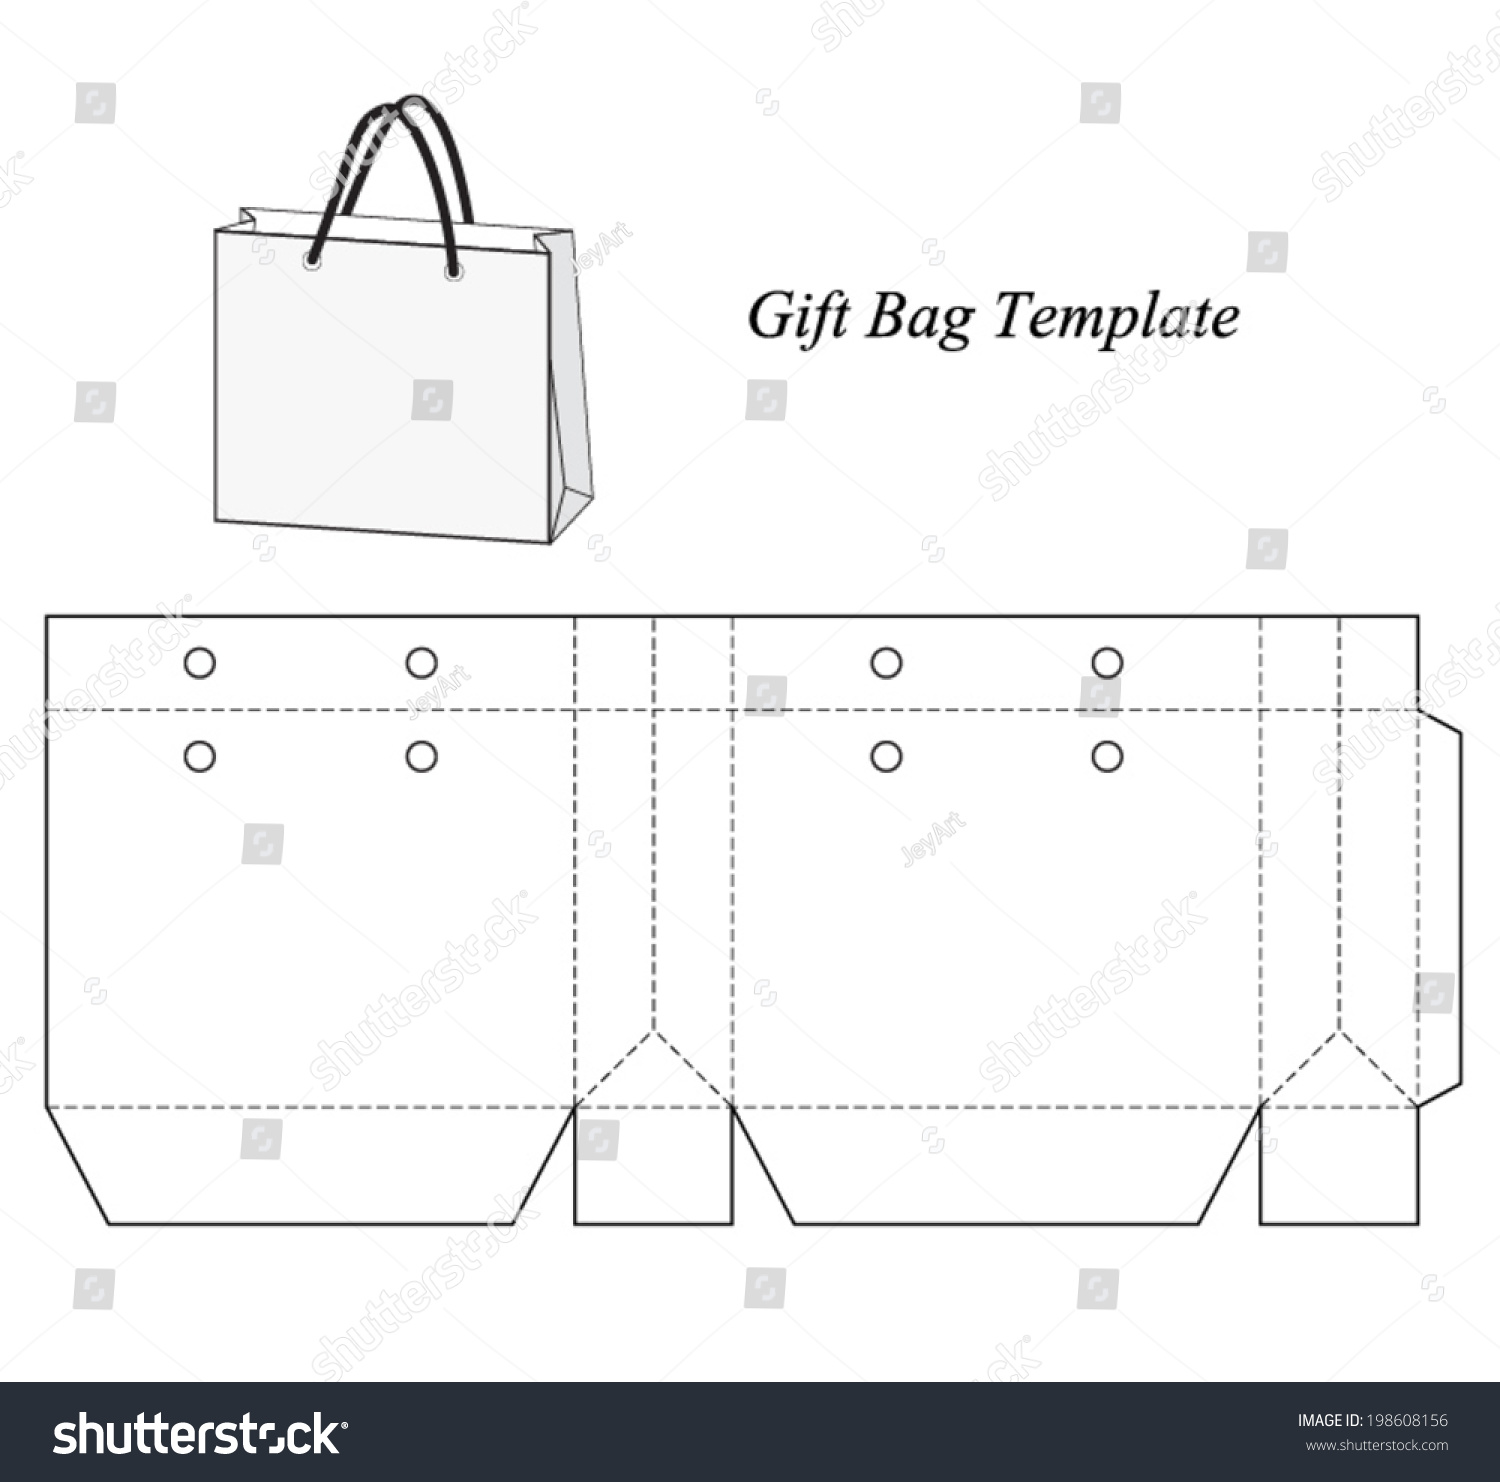 shopping bag template  Royalty-free Shopping bag template, vector… #198608156 Stock Photo ...